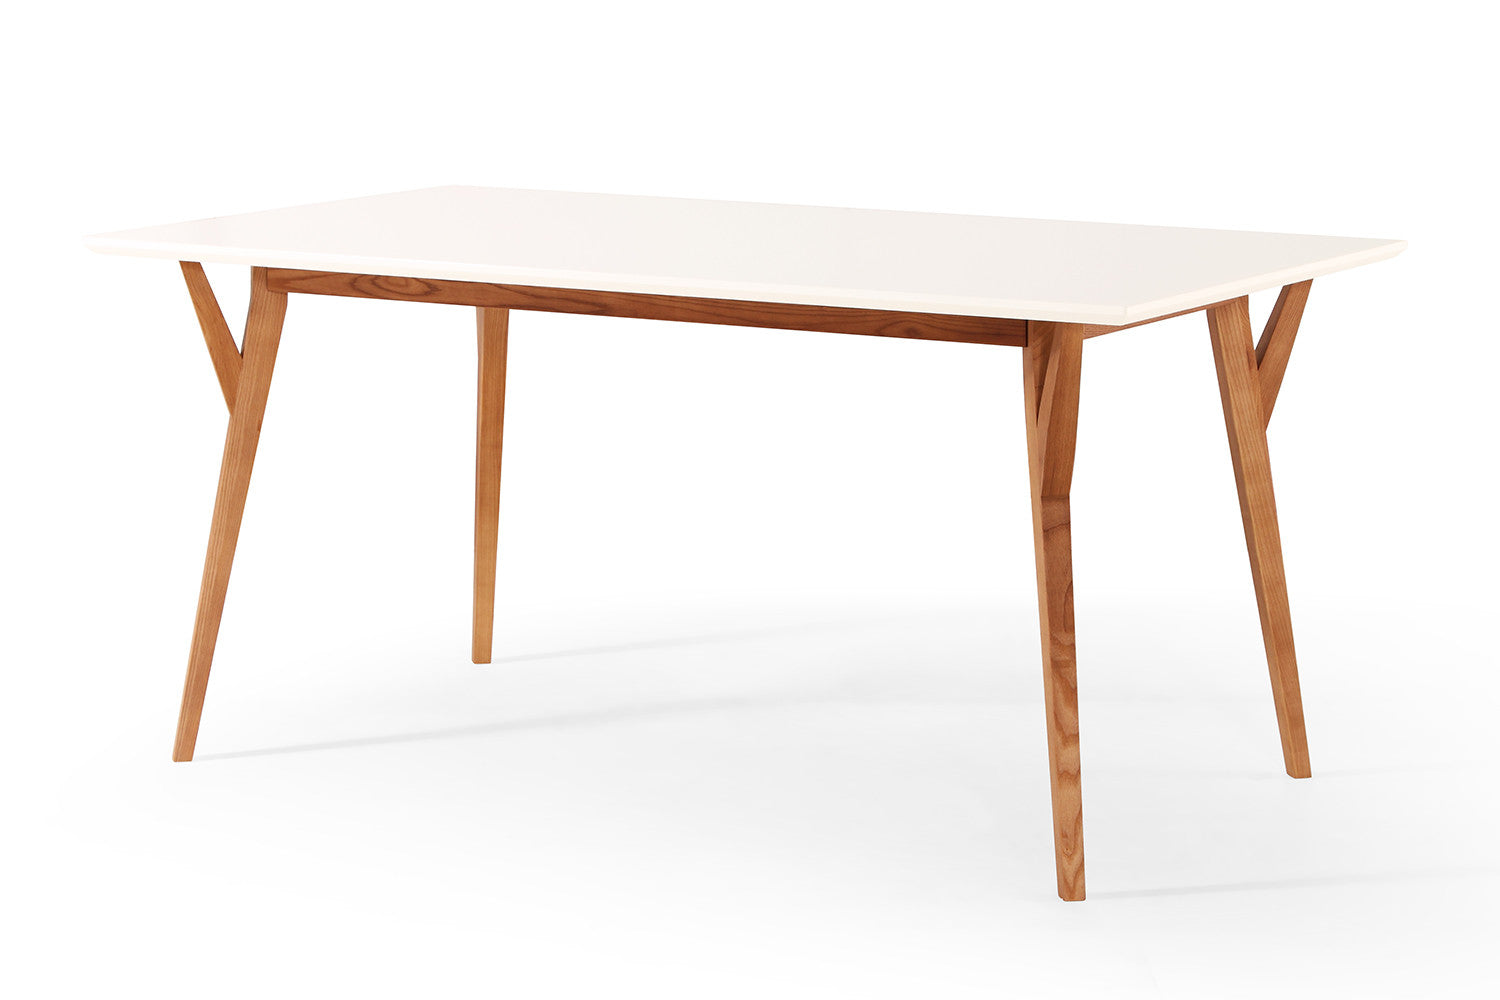 Table salle a manger blanche design valdiz for Table de salle a manger design blanche